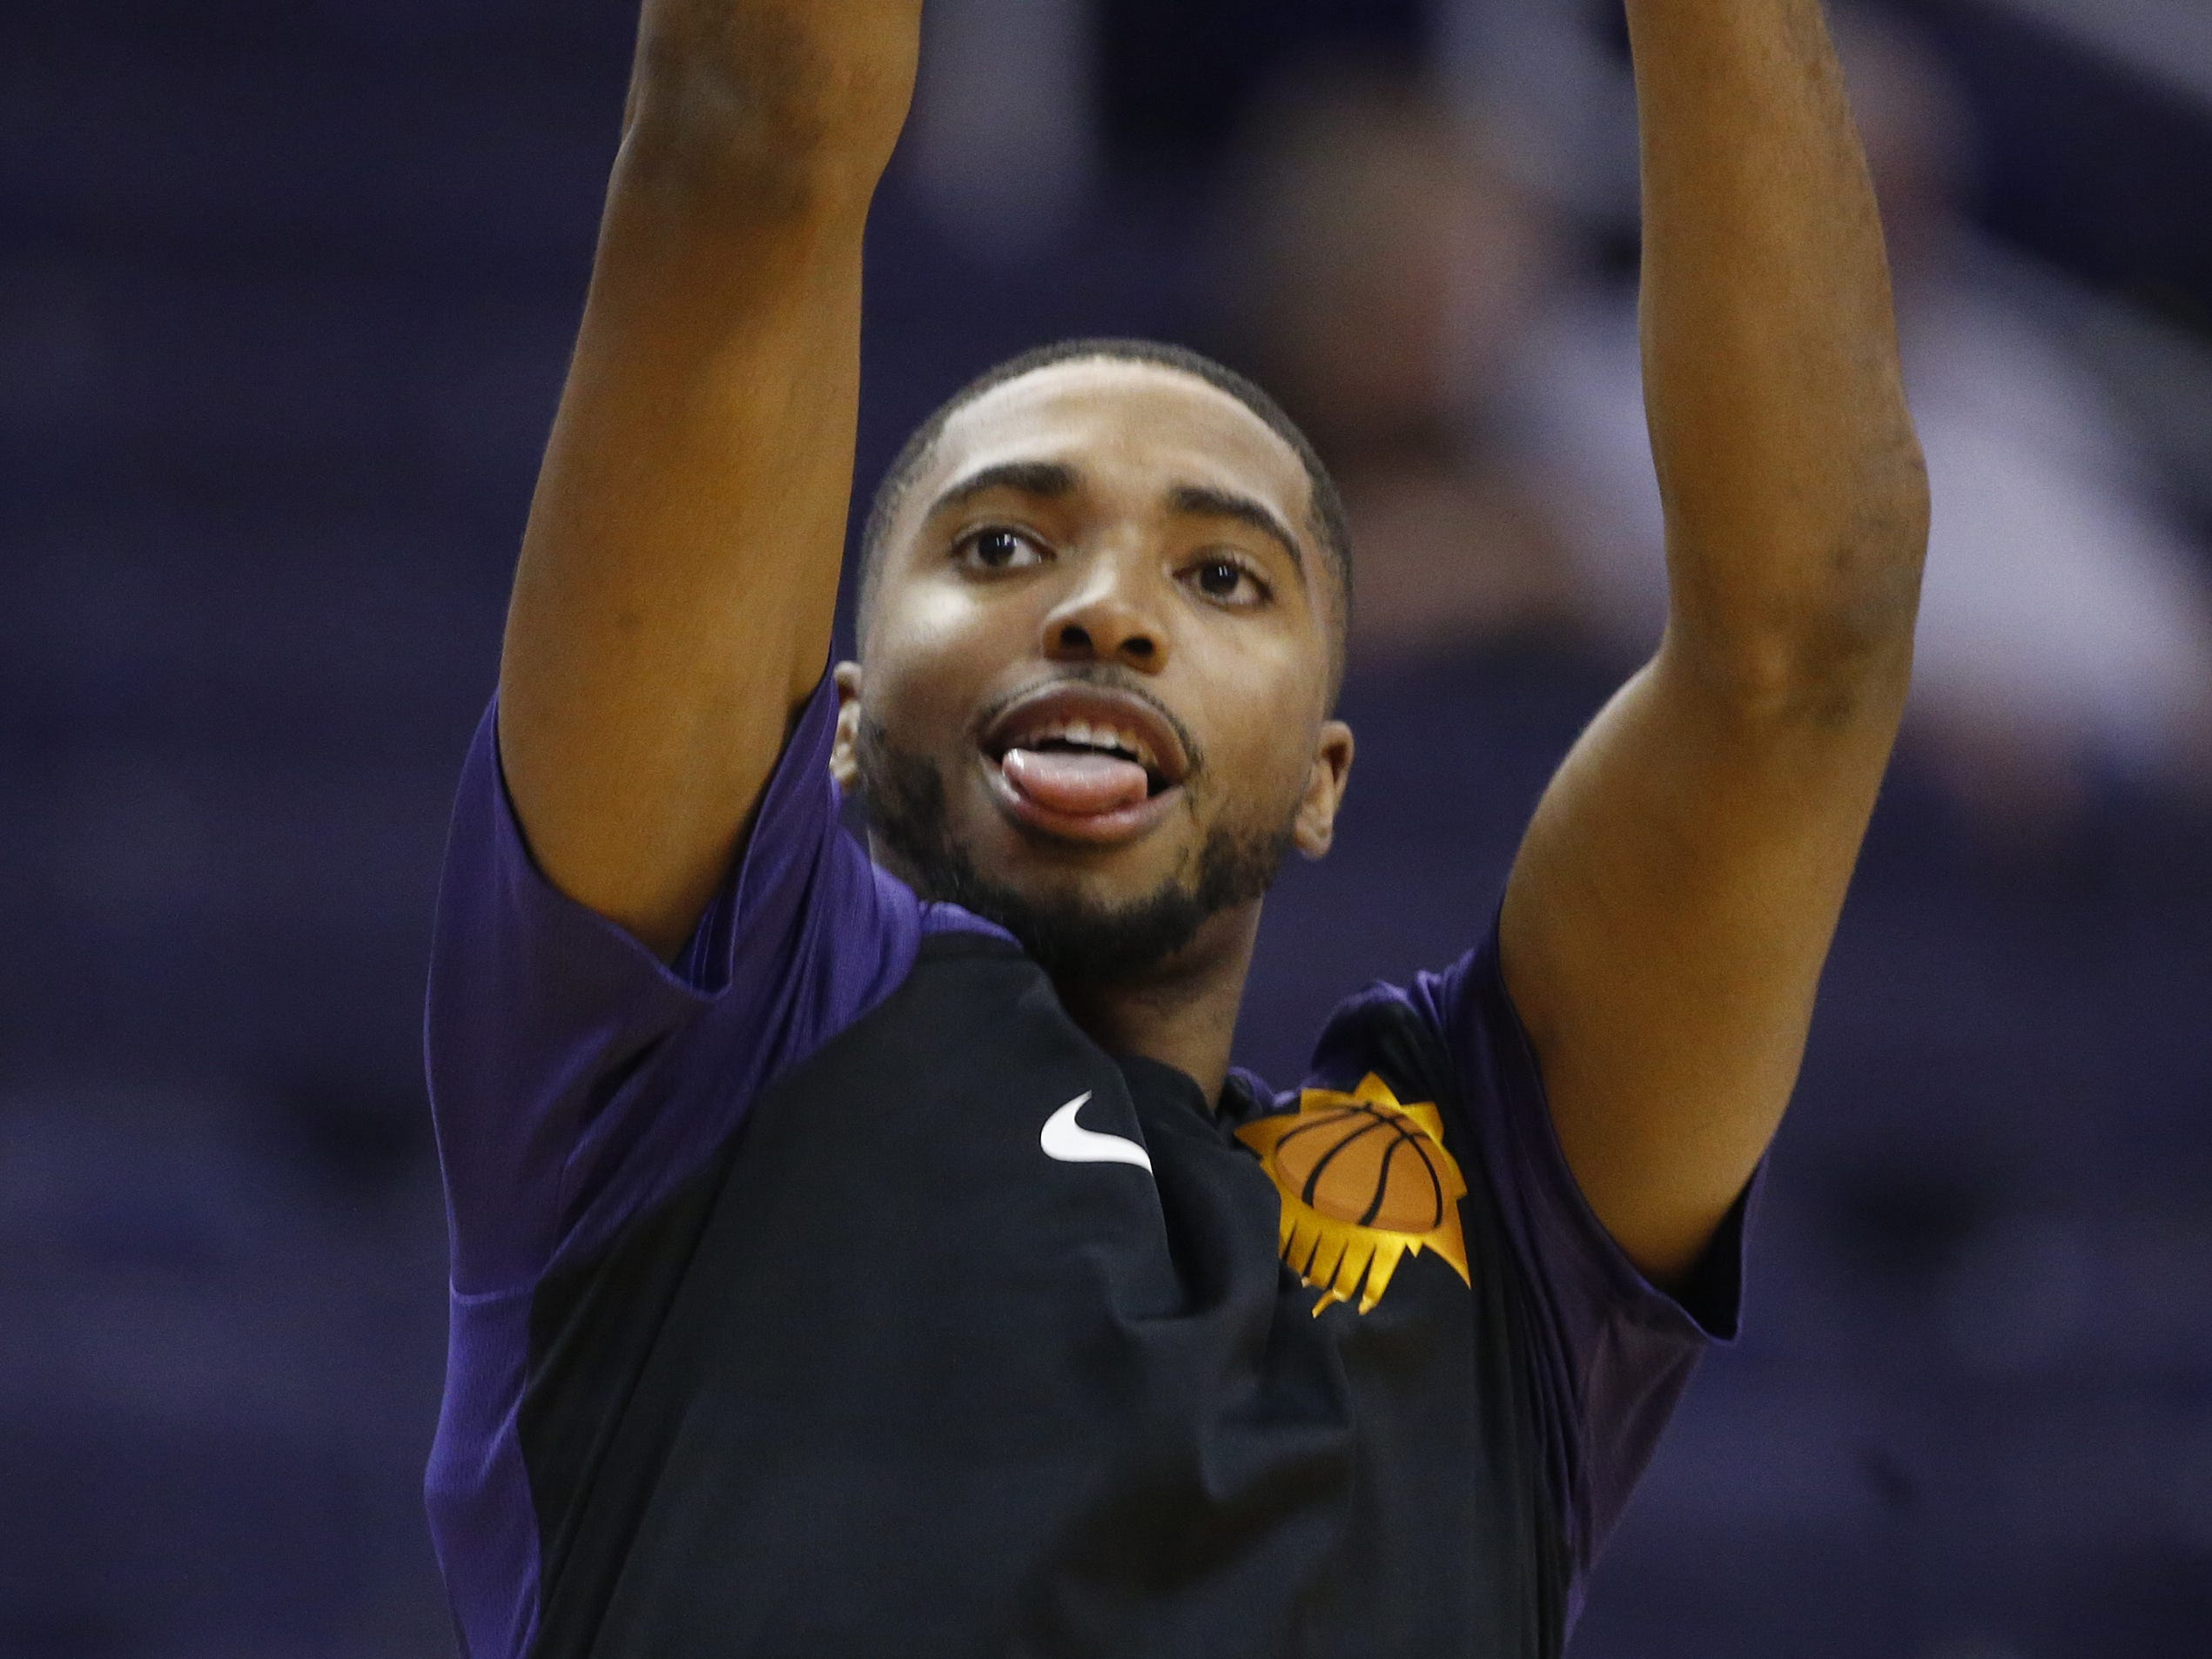 Suns Mikal Bridges (25) shoots before a game against the Kings at Talking Stick Resort Arena in Phoenix, Ariz. on October 1, 2018.